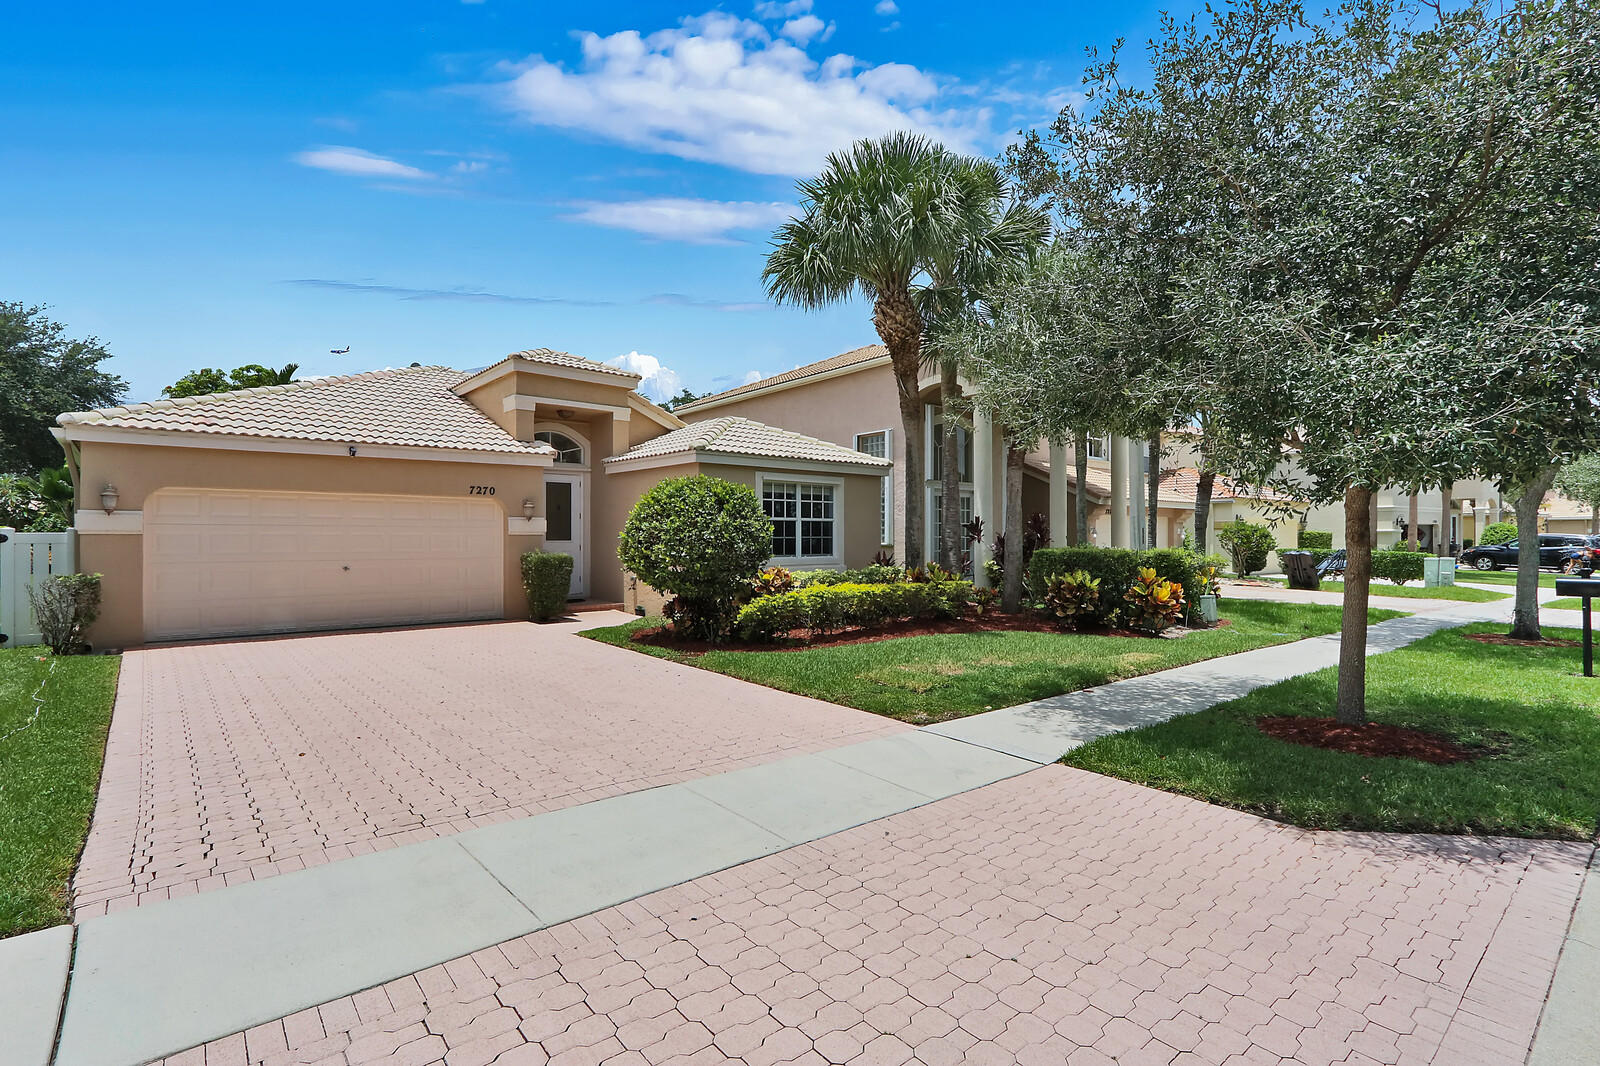 Home for sale in Kingsmill Lake Worth Florida